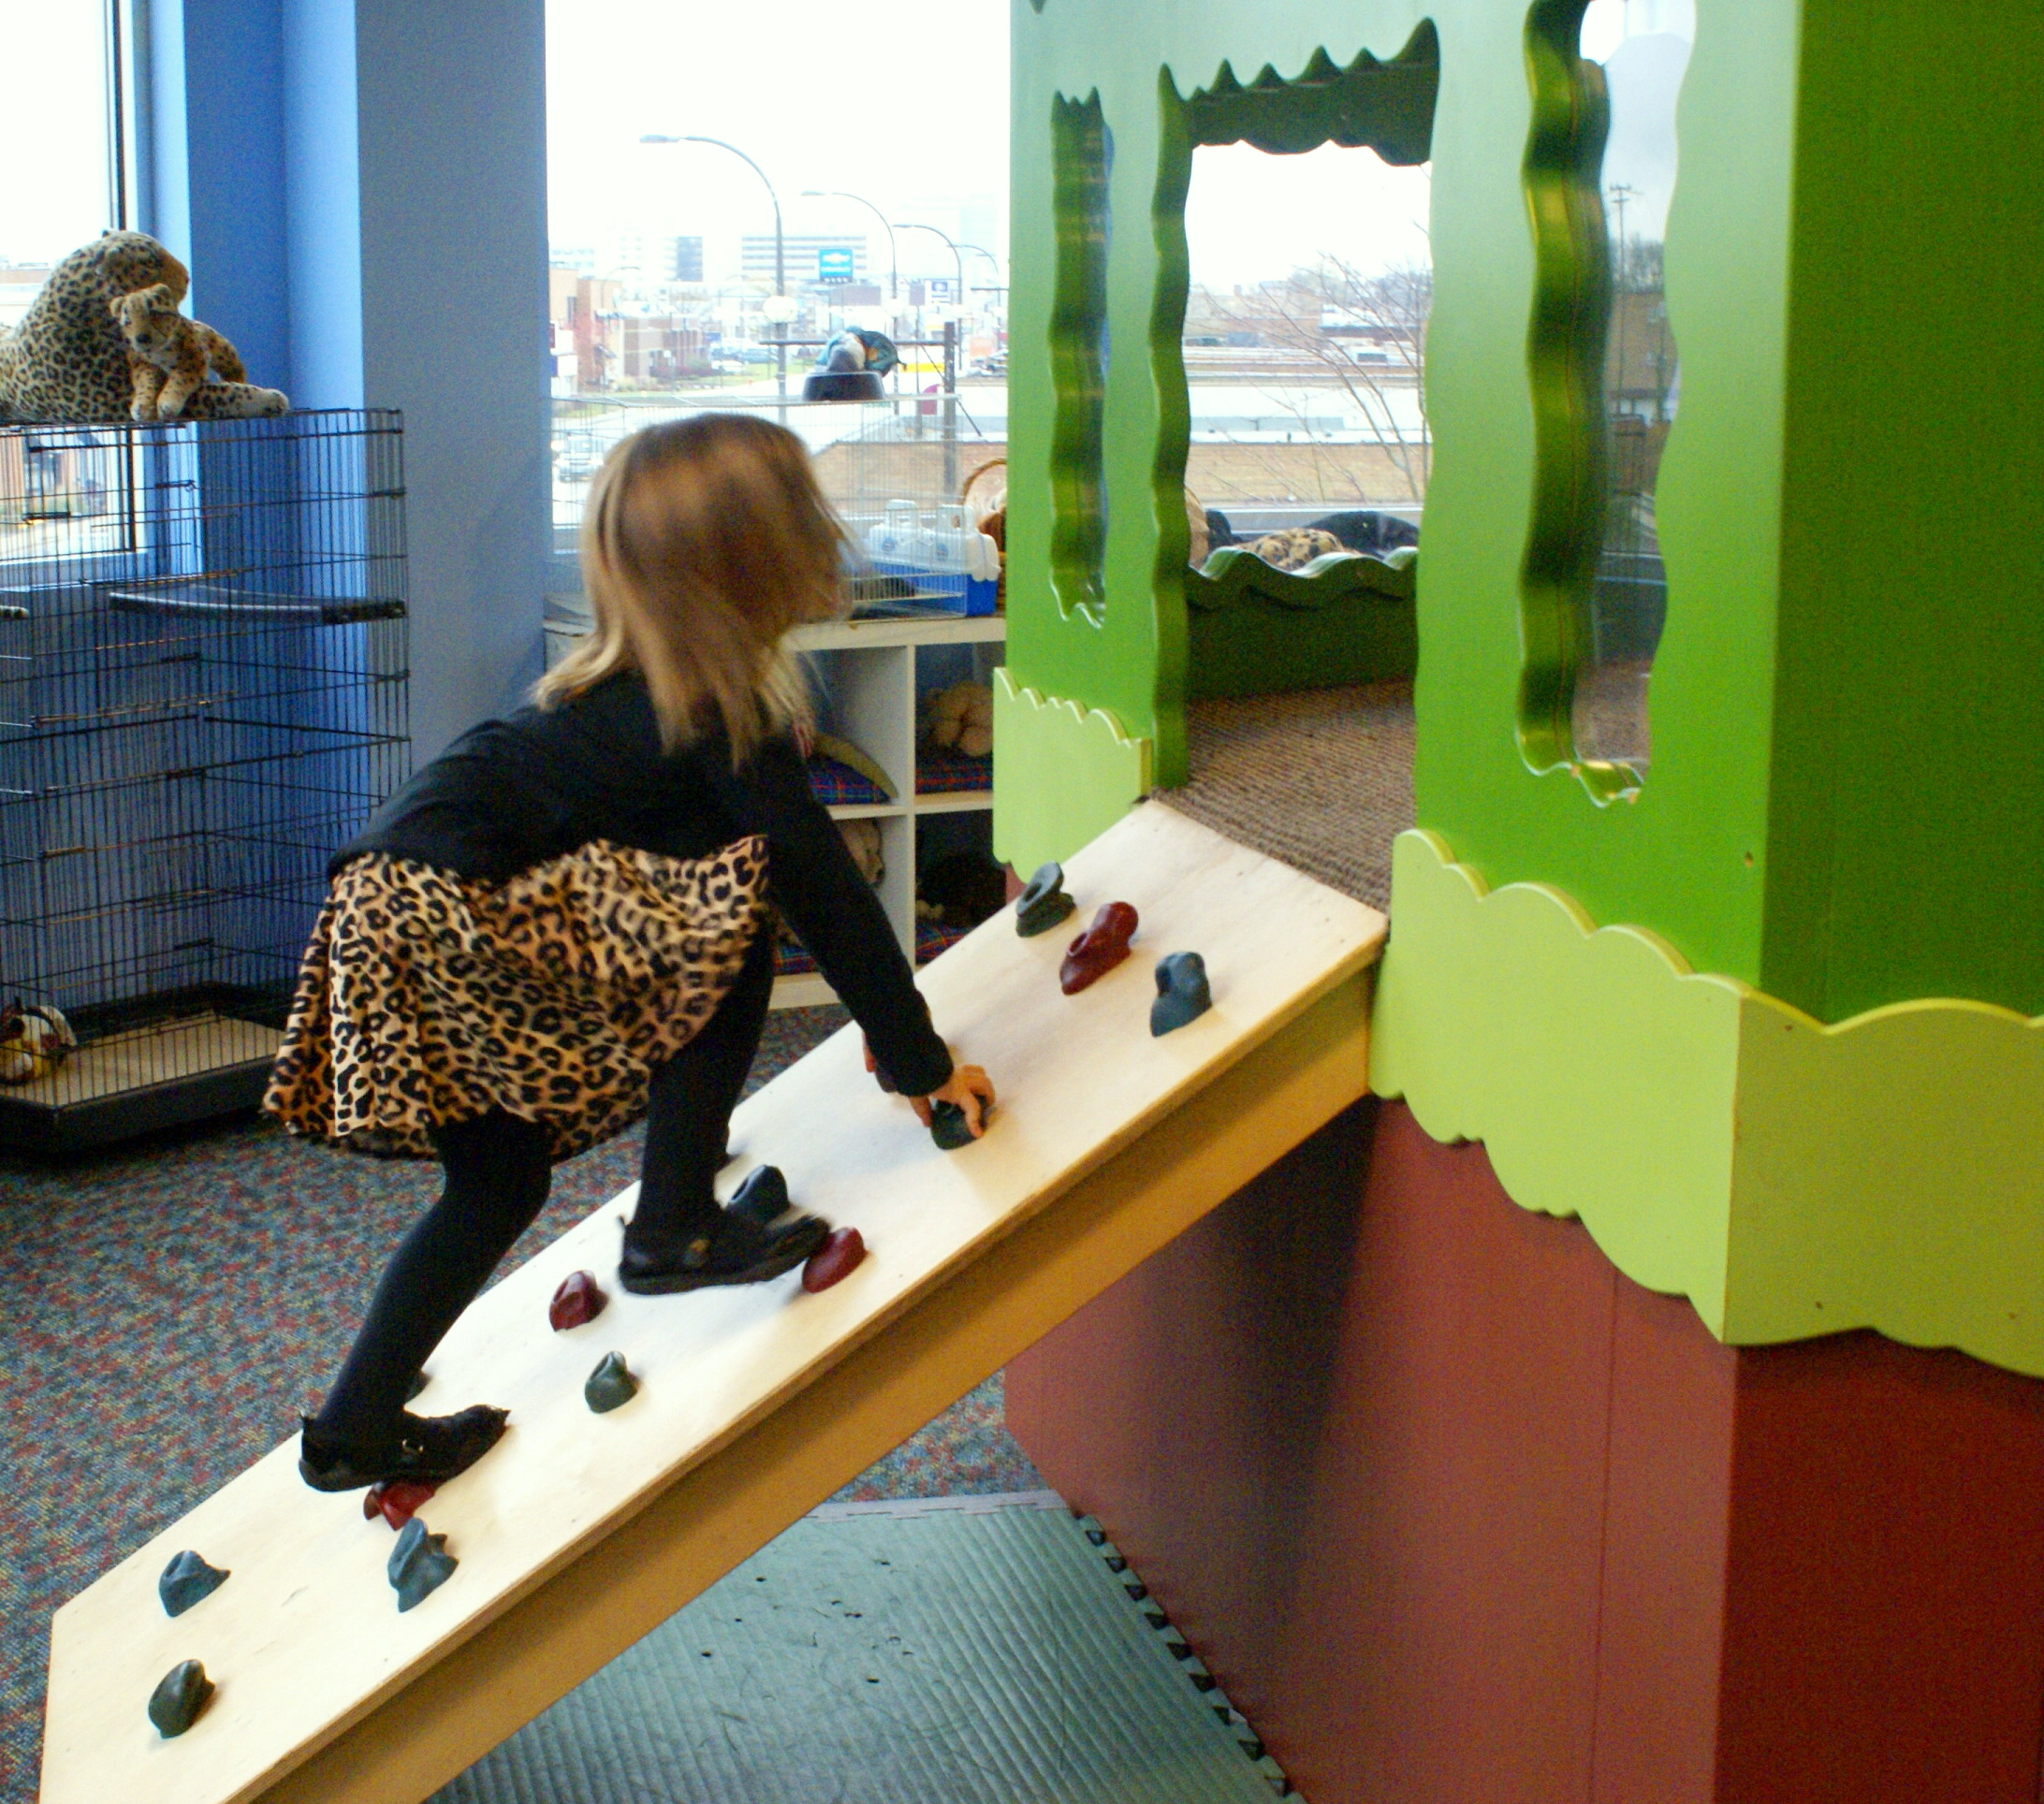 Gymboree Playdate Guide - Chicago: The Children's Museum in Oak Lawn